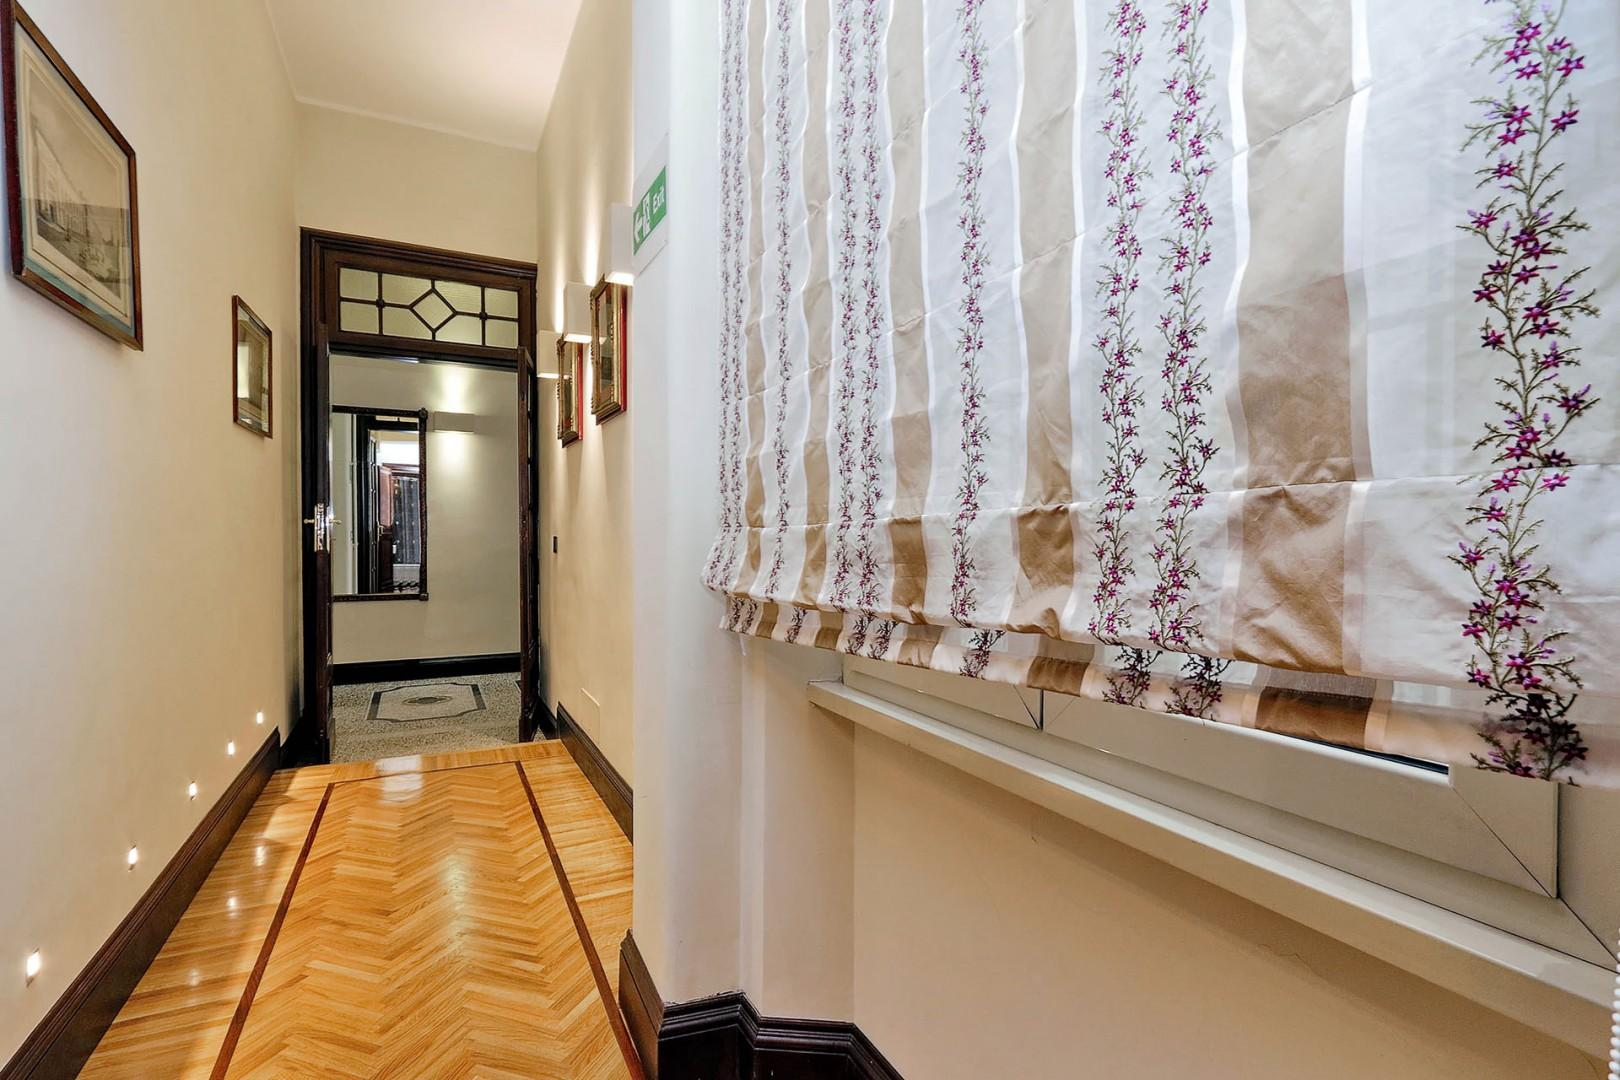 The hallways in this apartment are works of art themselves!